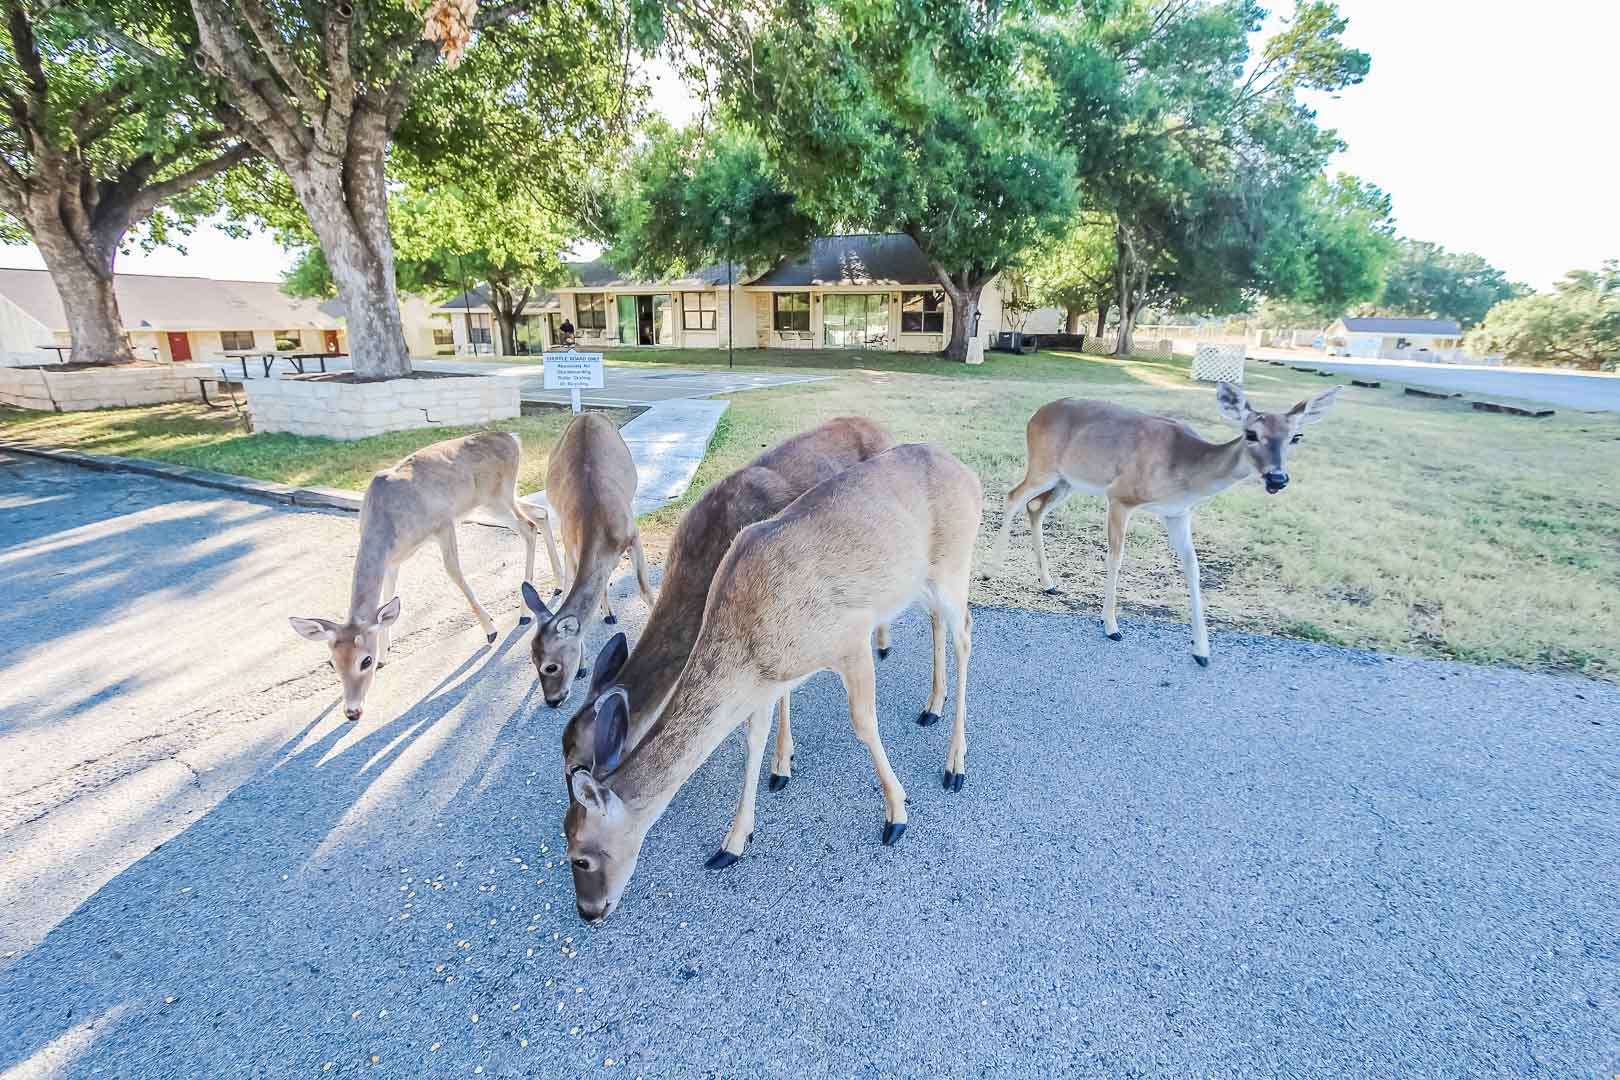 Deer located throughout the property at VRI's Vacation Village at Lake Travis in Texas.